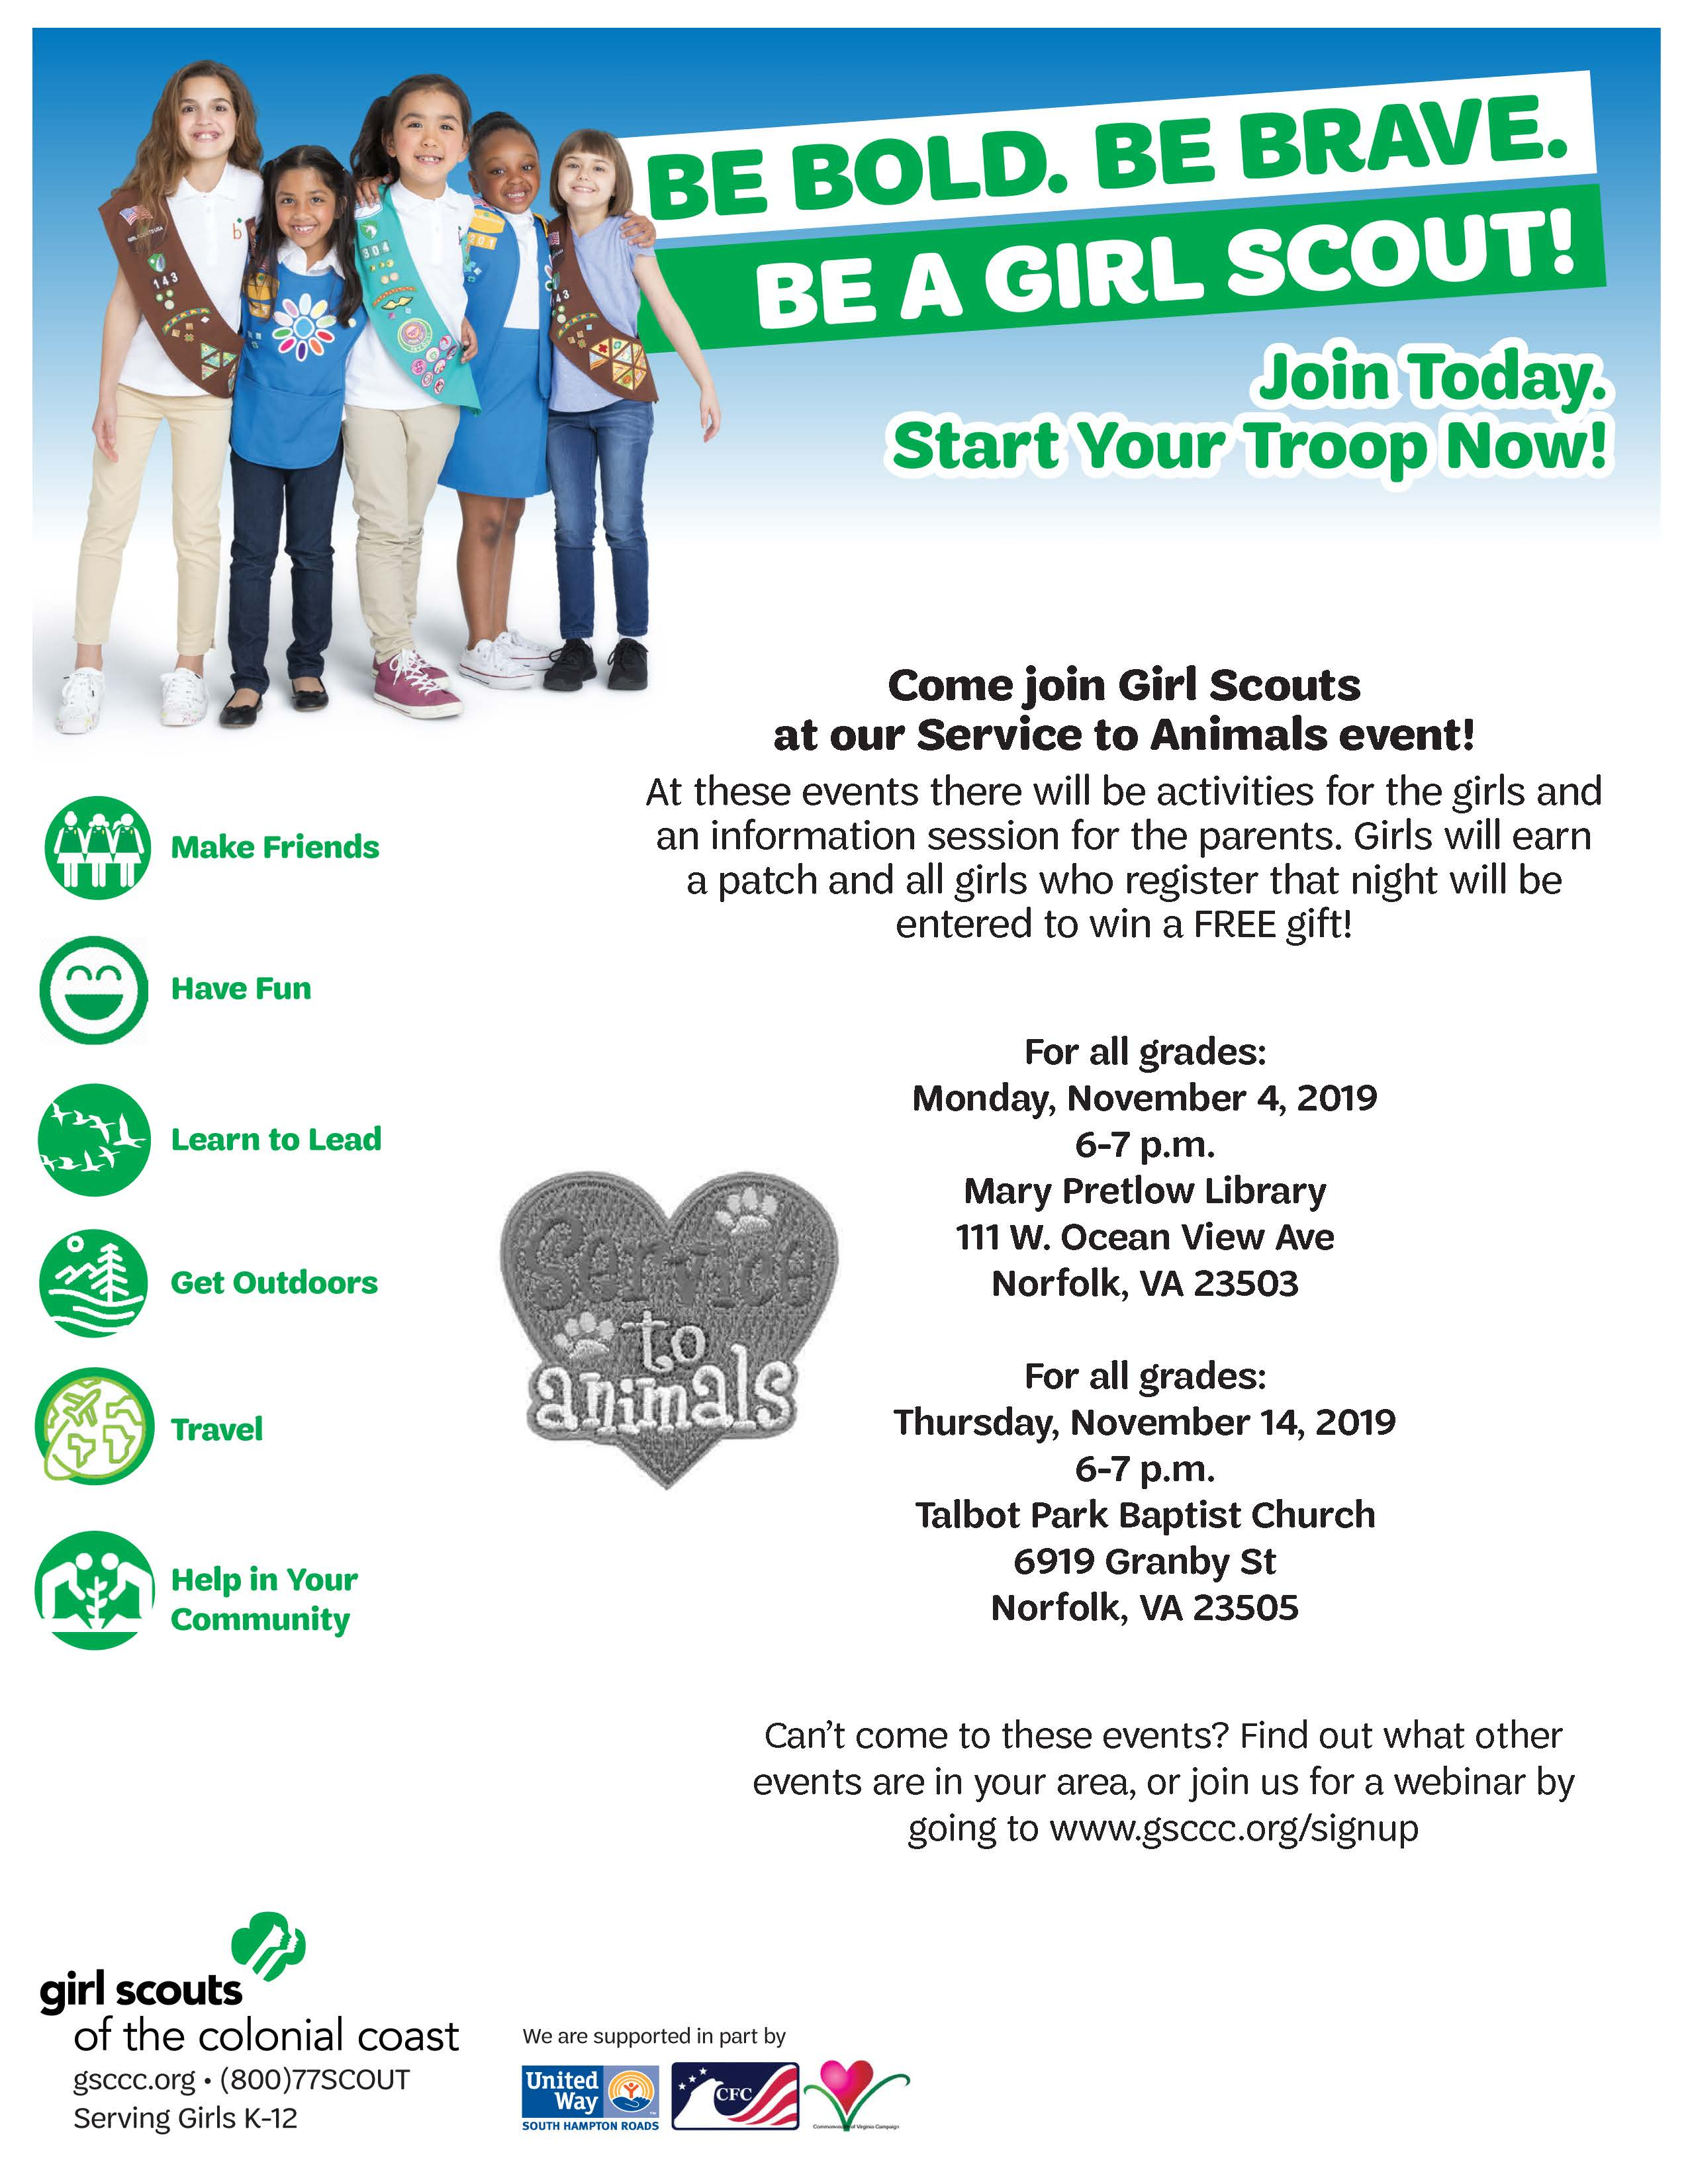 Girl Scouts service to animals event